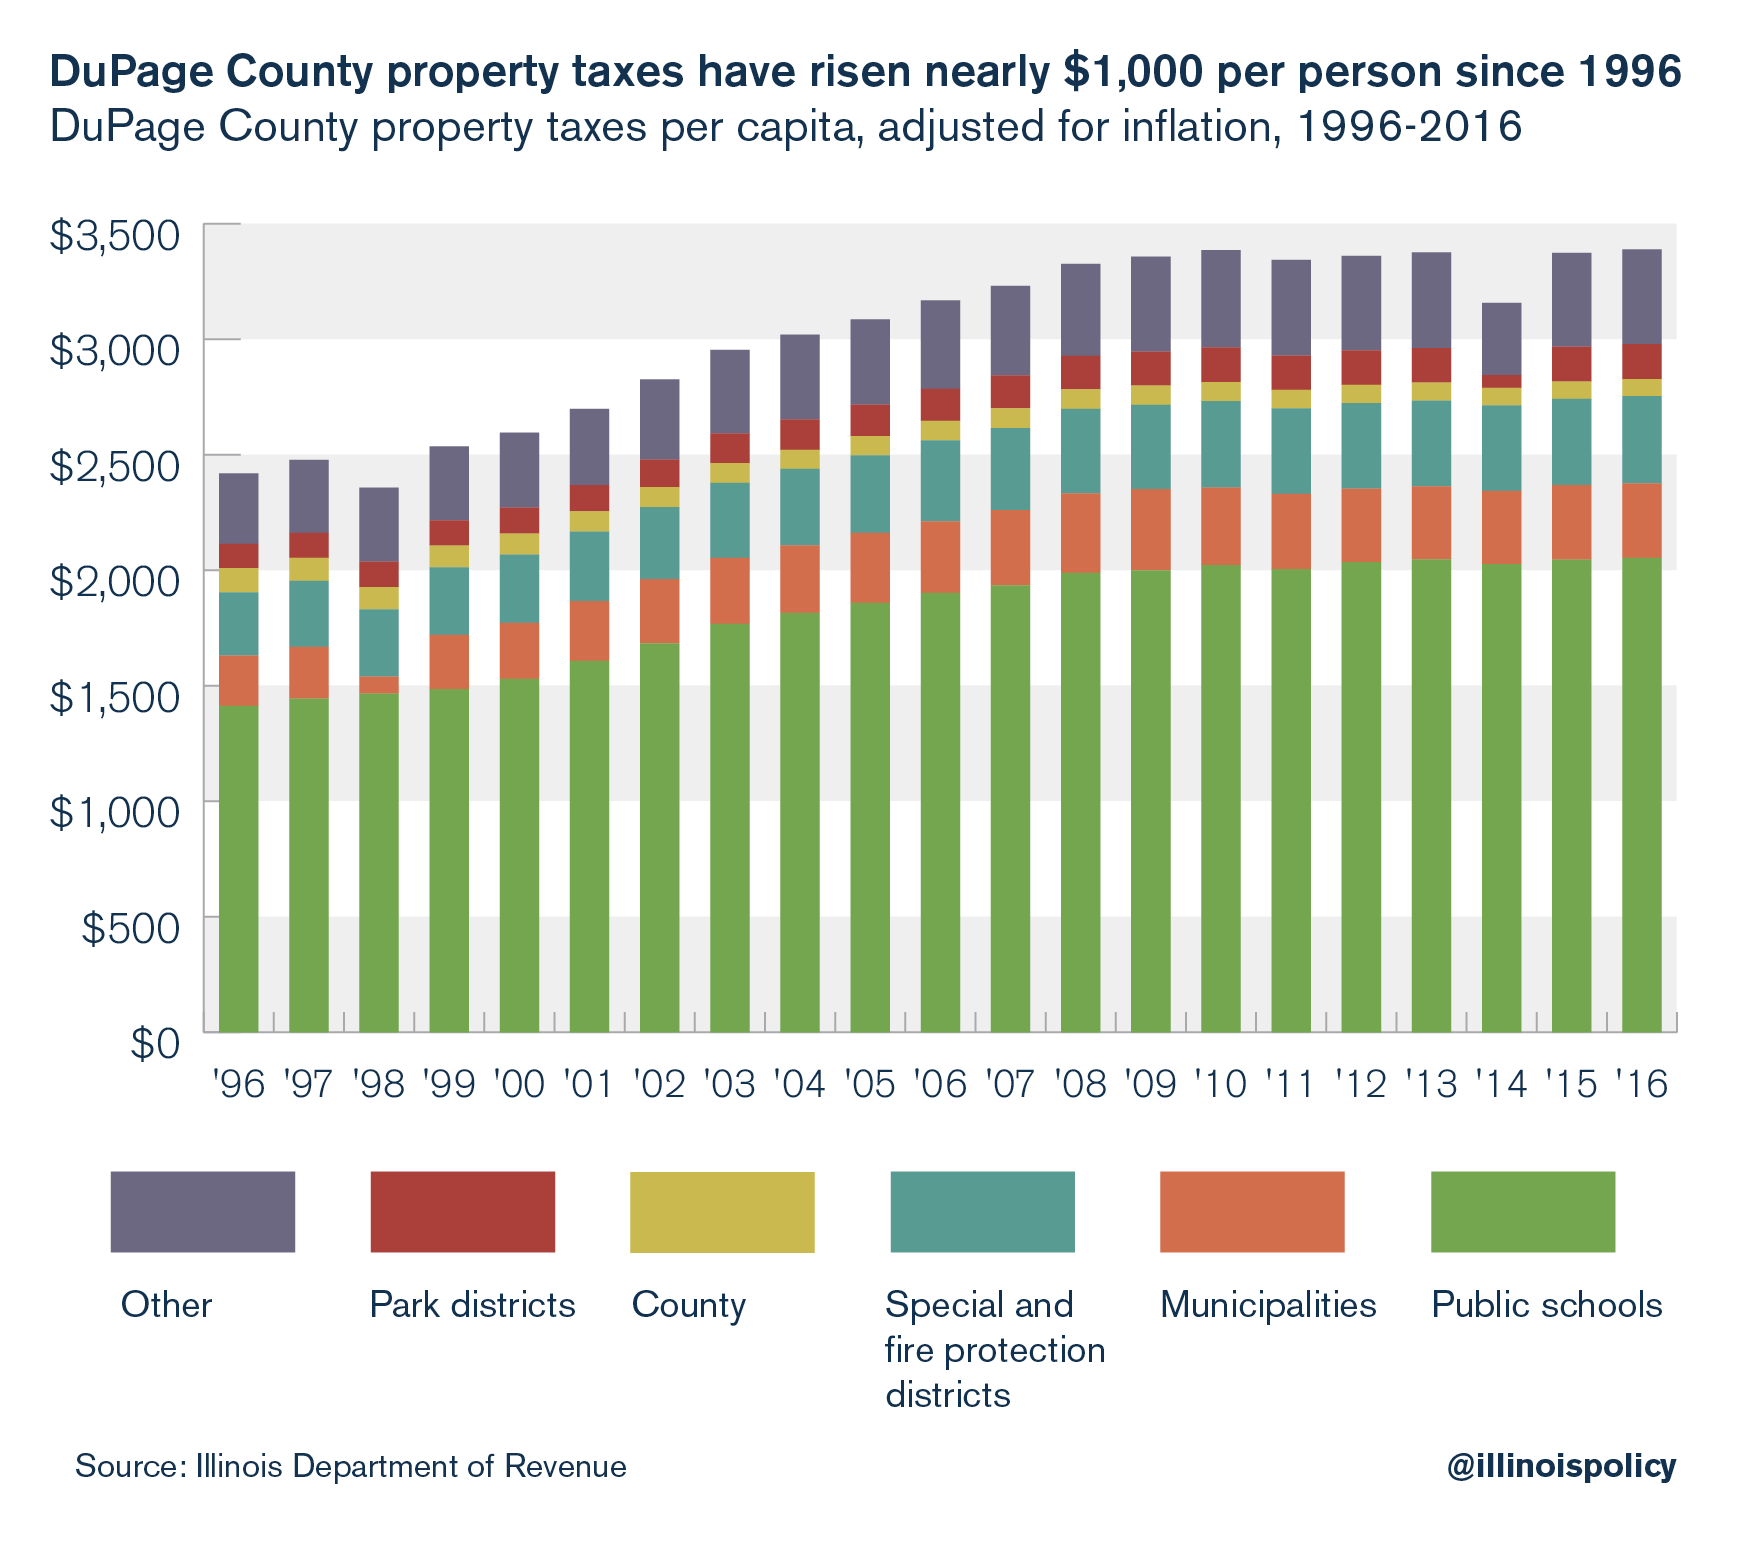 DuPage County property taxes have risen nearly $1,000 per person since 1996